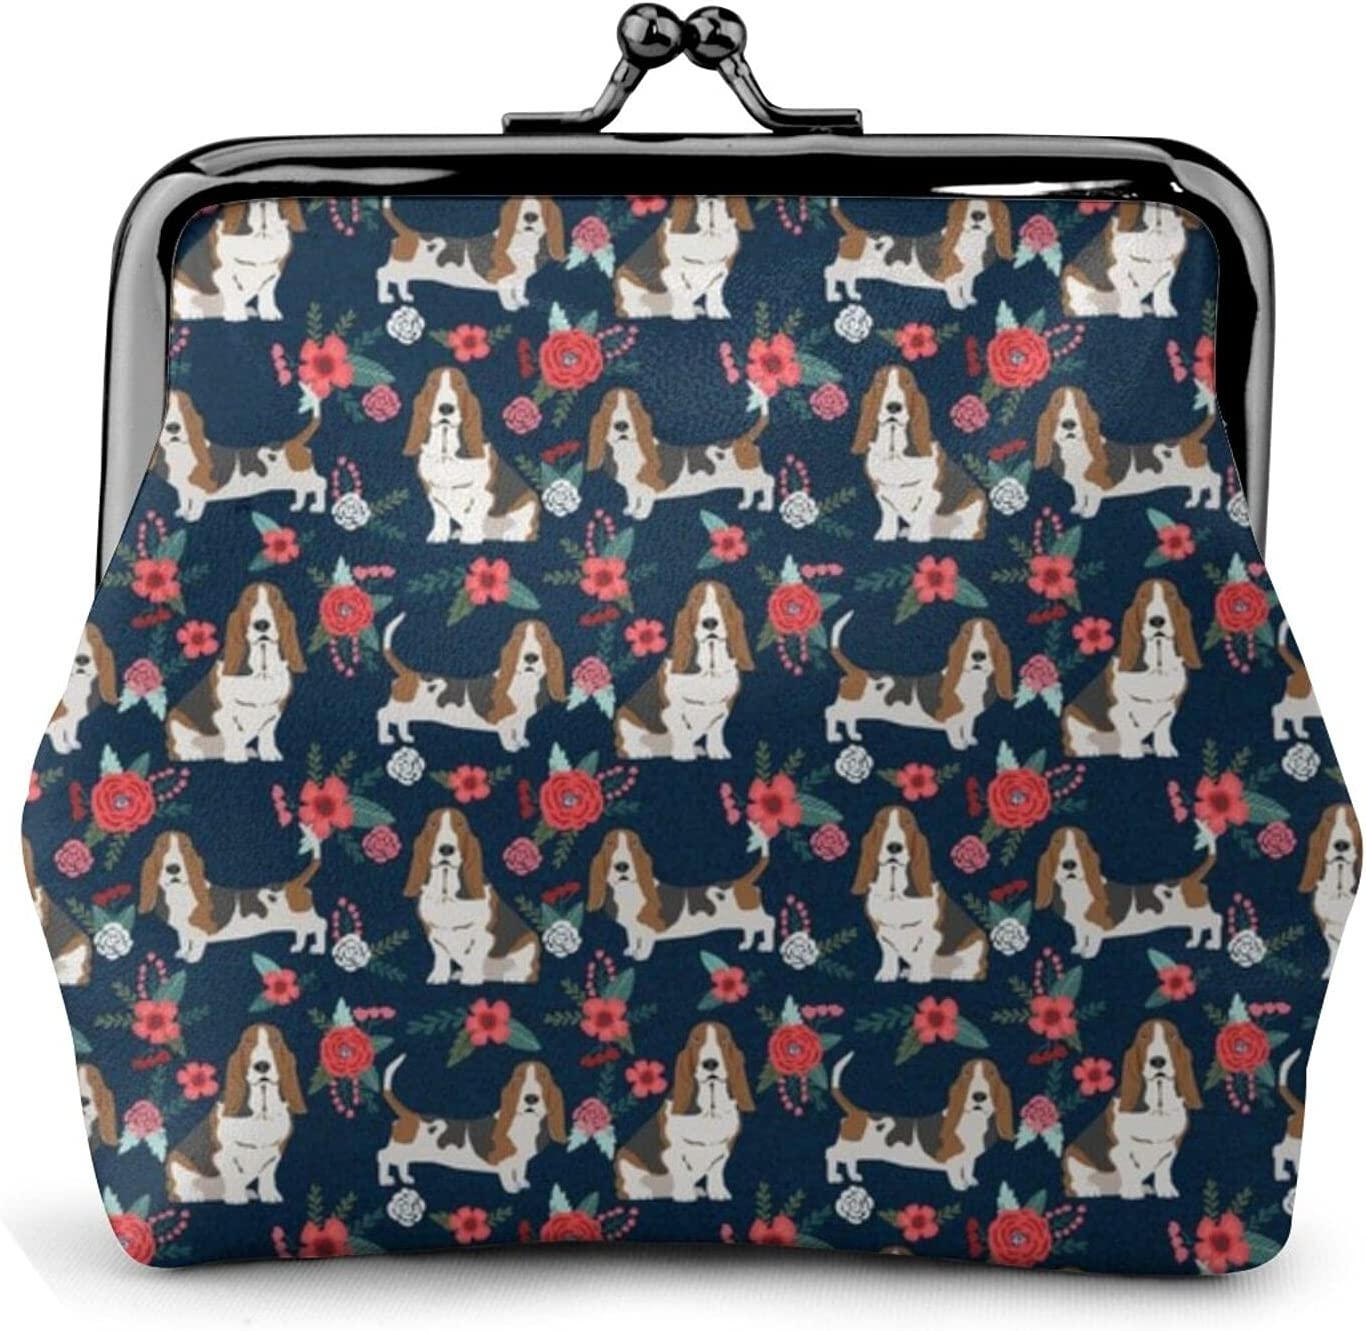 Basset Hound Floral 262 Coin Purse Retro Money Pouch with Kiss-lock Buckle Small Wallet for Women and Girls